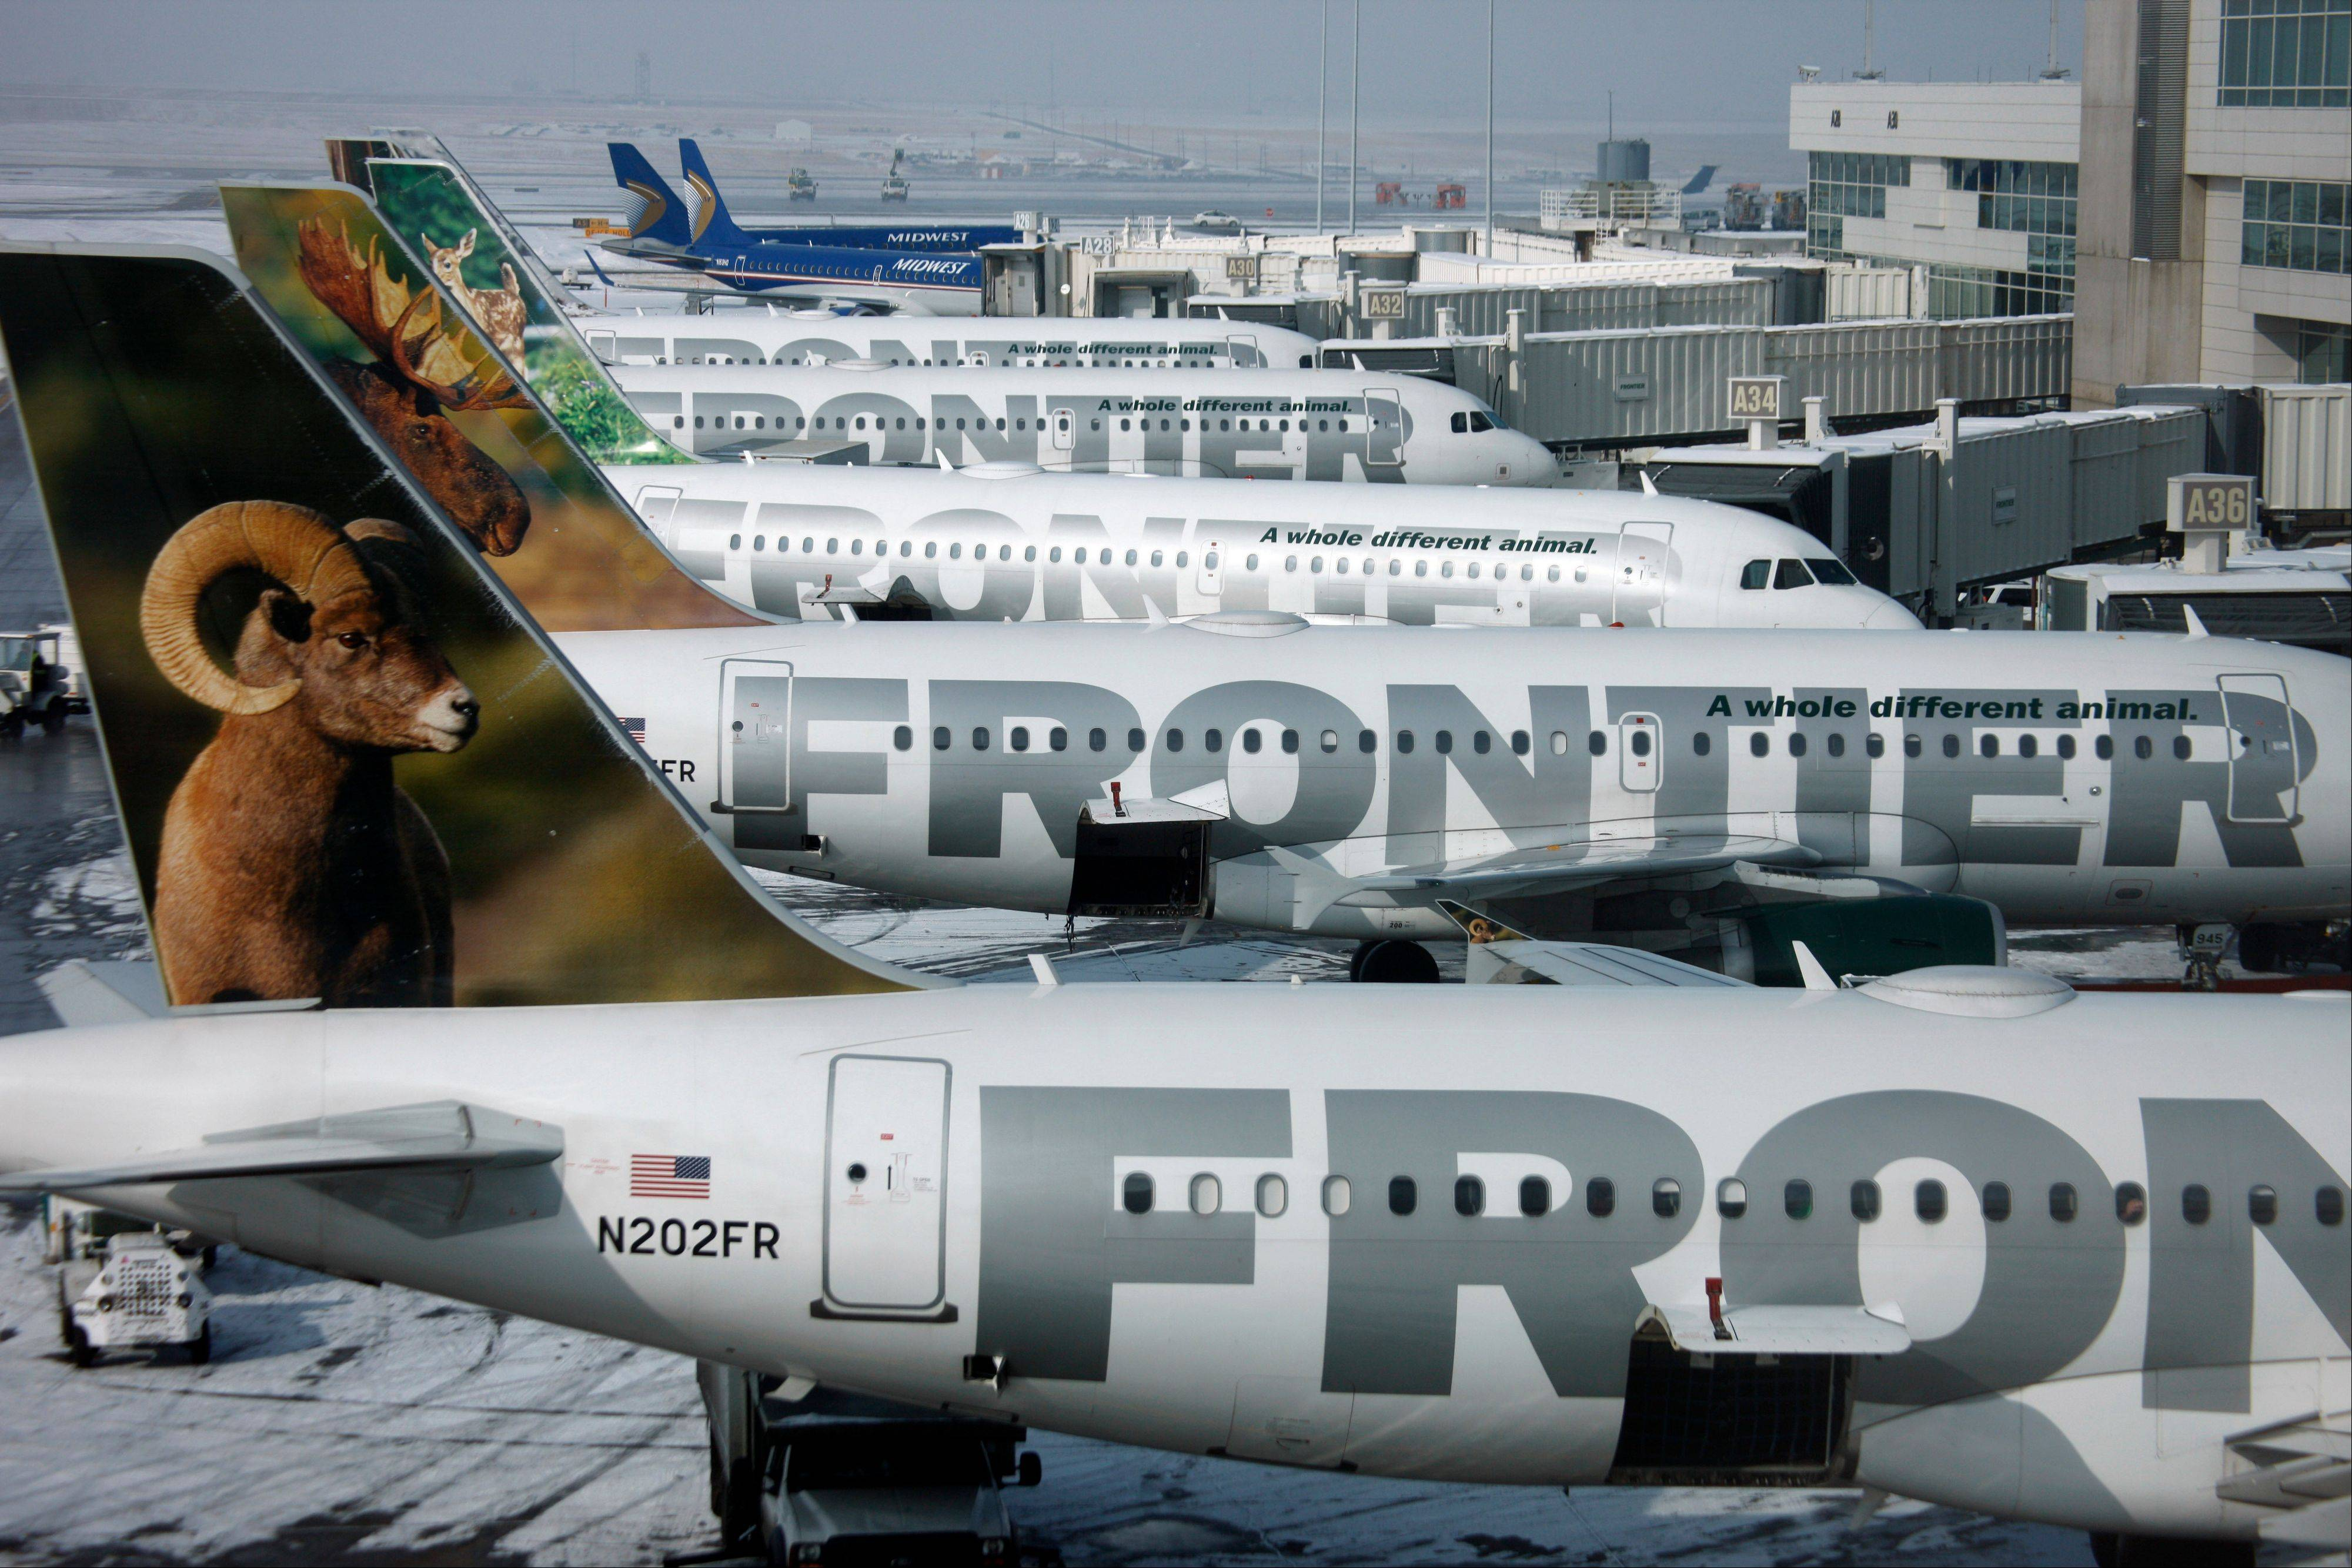 Carriers are offering more deals to passengers who book flights directly on their websites. Frontier Airlines is the latest carrier to jump into the fight, announcing Wednesday, Sept. 12, 2012, that it will penalize passengers who donít book directly with the airline.